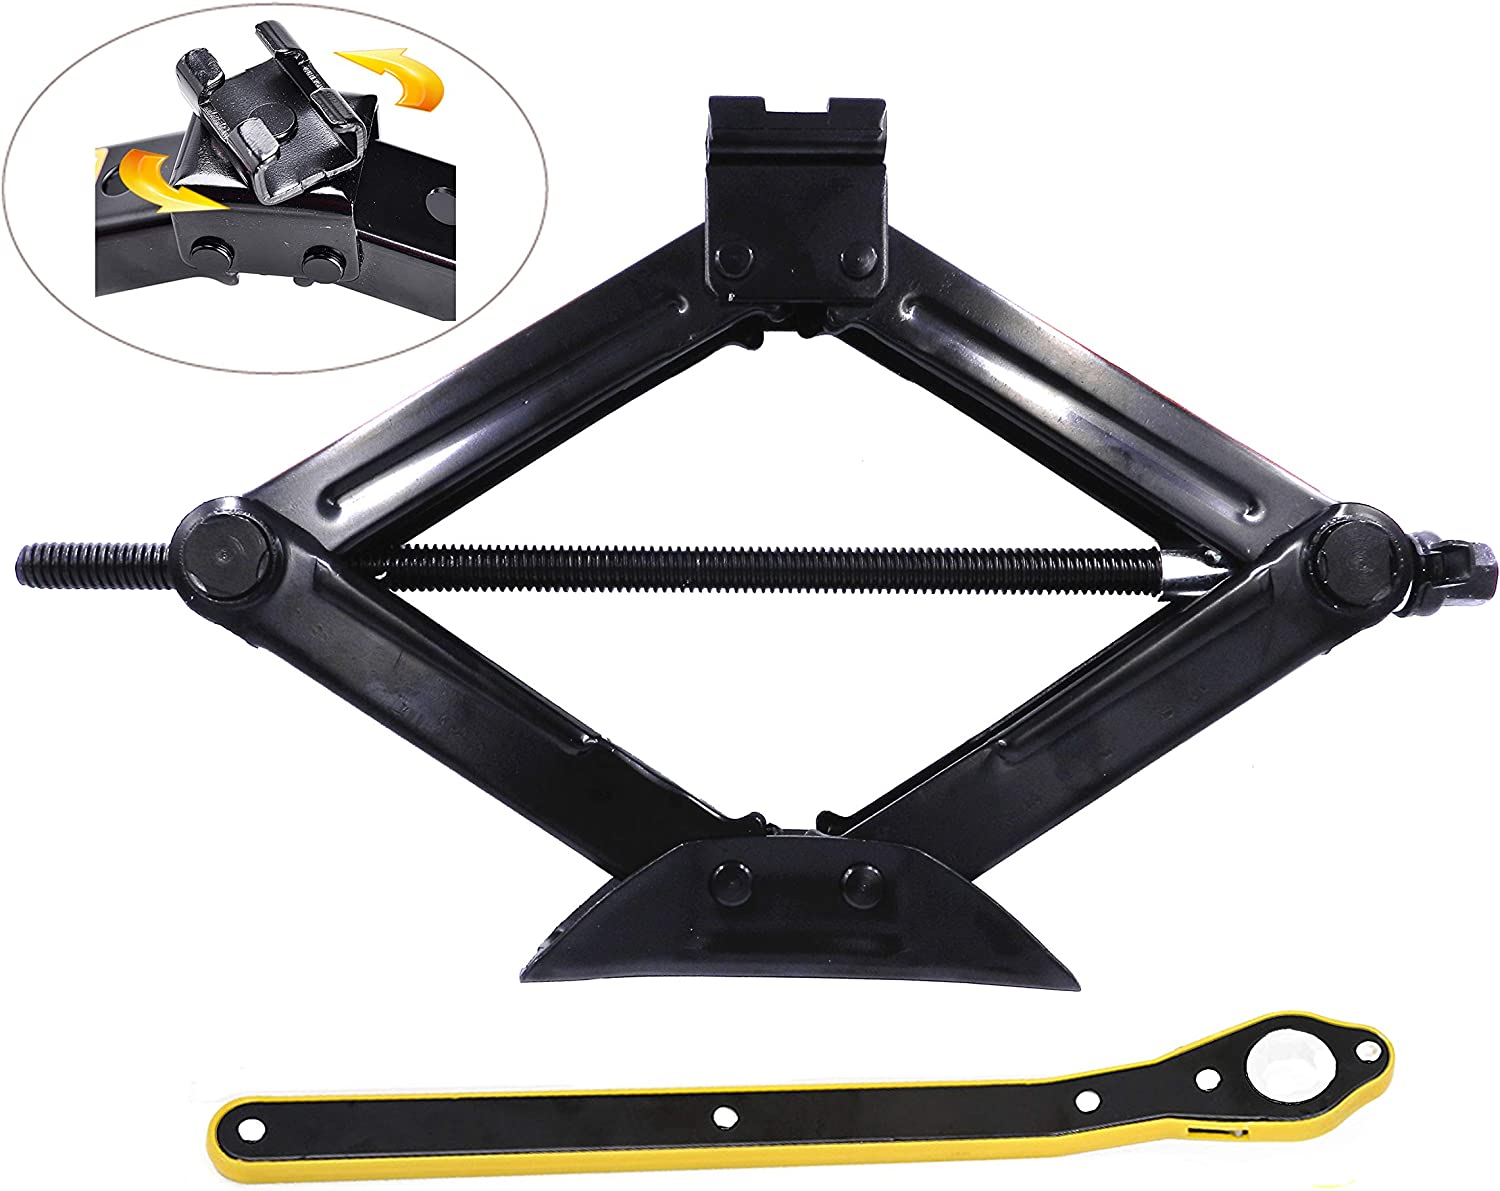 2T HUGE LEADING 4,409 Lbs Capacity Car Scissor Jack with Ratchet Handle Hand Crank Portable RV Stabilizers 2 Tons